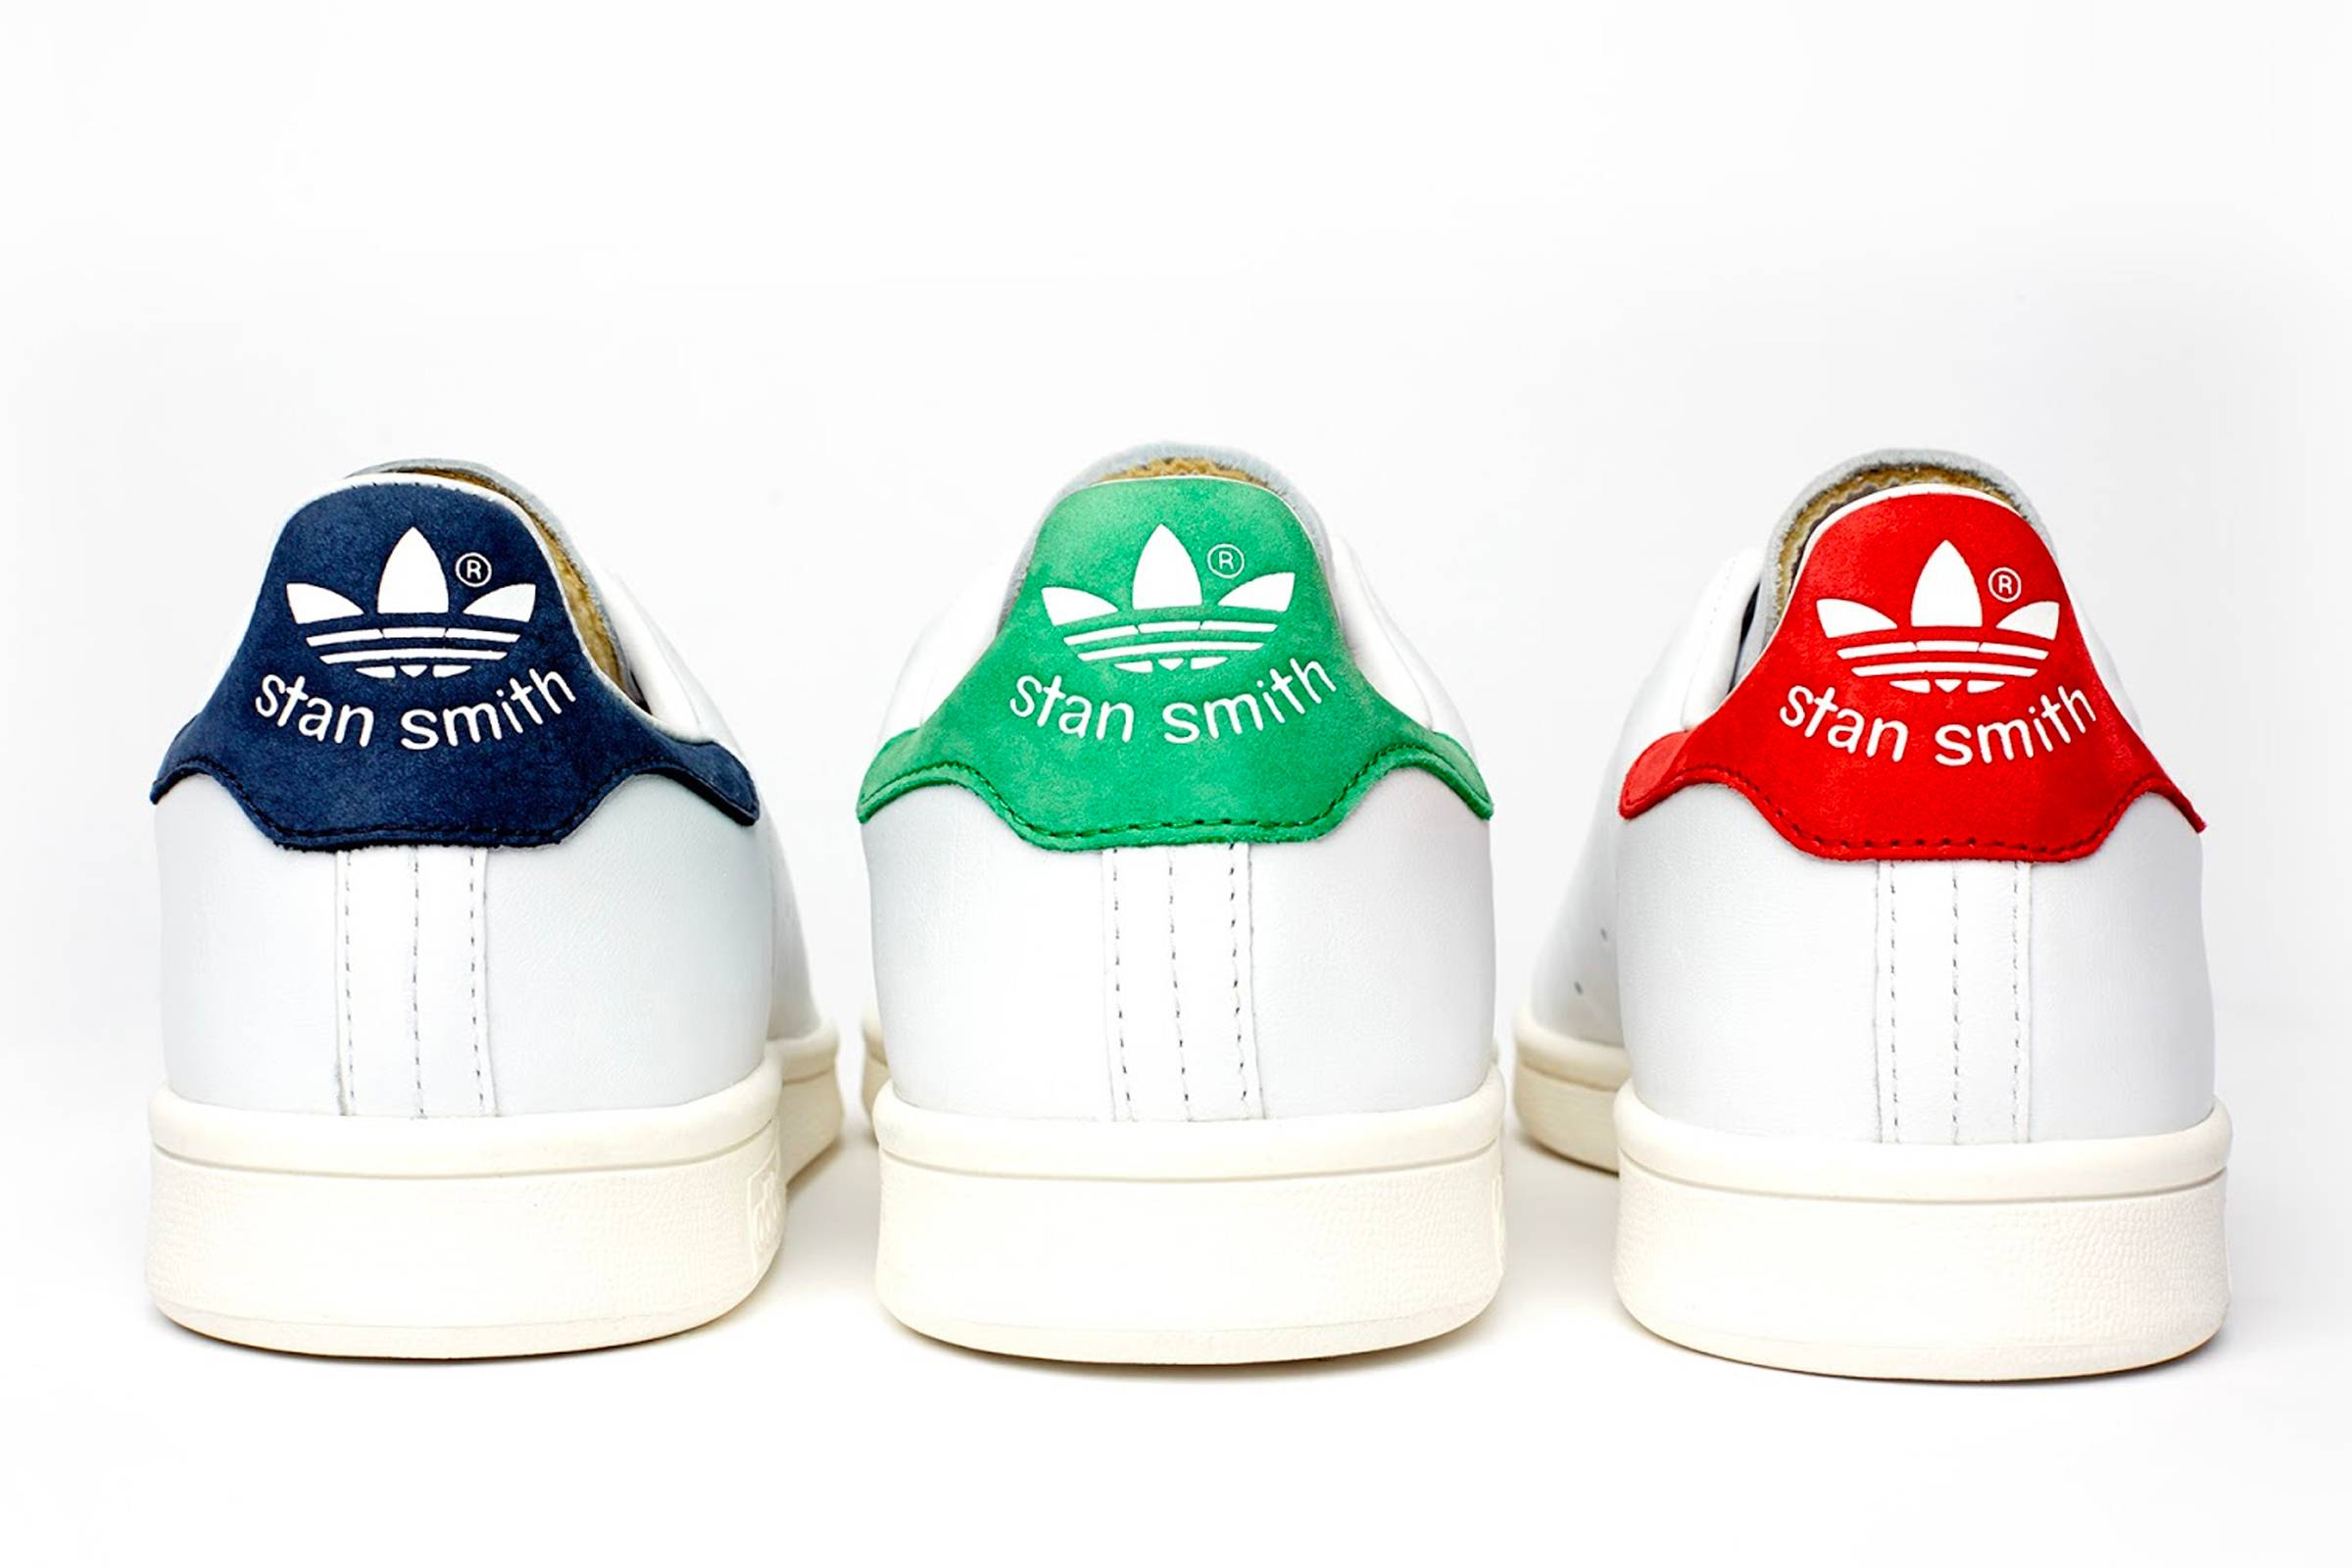 More Than Just a Man  A History of the adidas Stan Smith - Adidas ... 65bf1d3d418d6